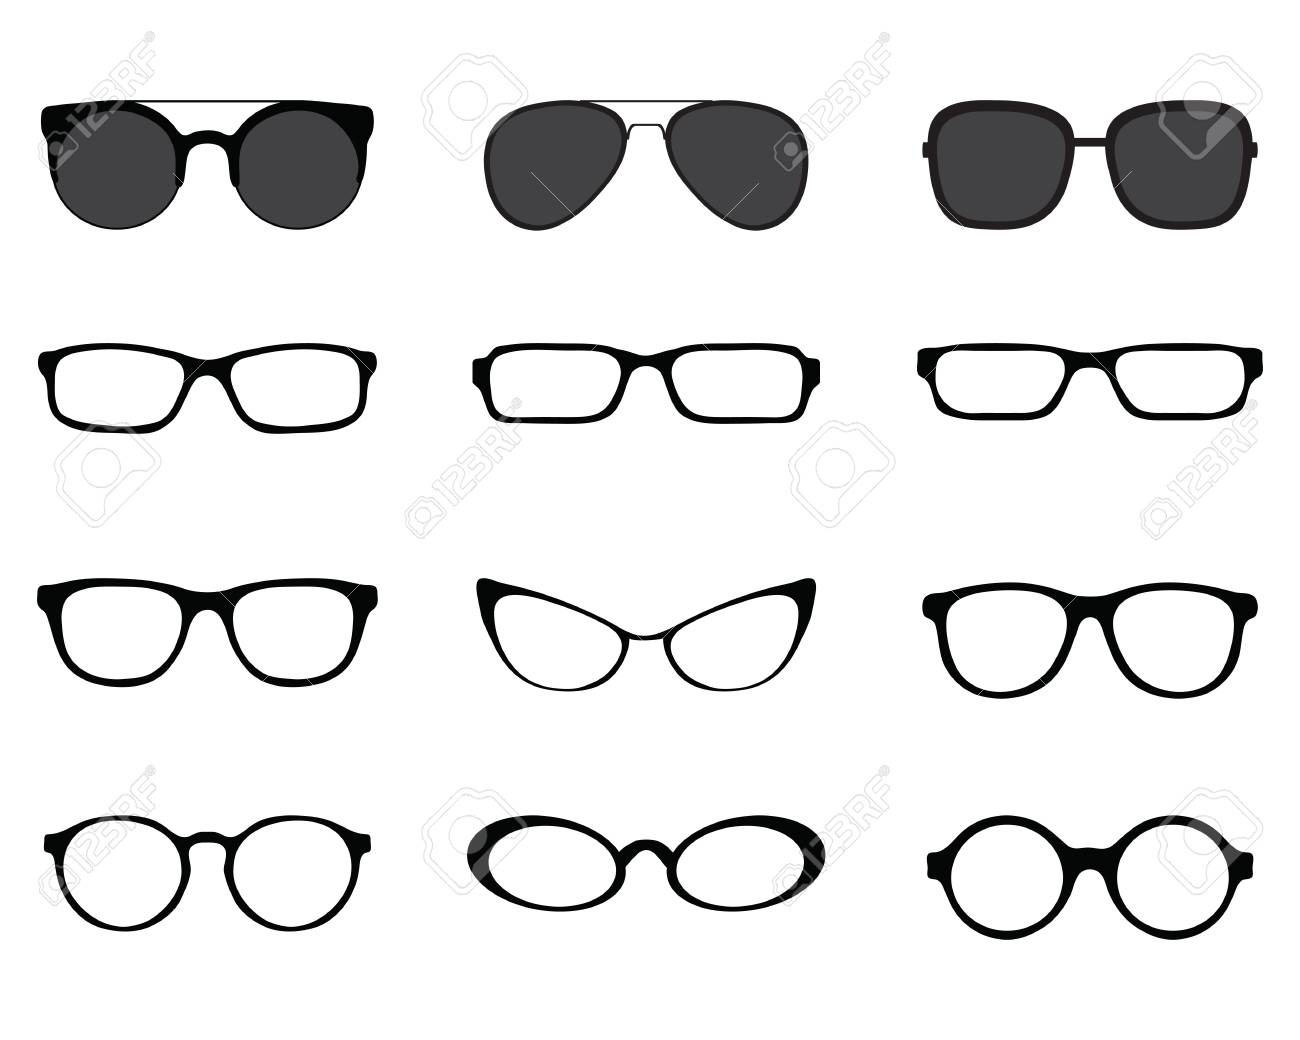 Black silhouettes of different eyeglasses on a white background - 126708351